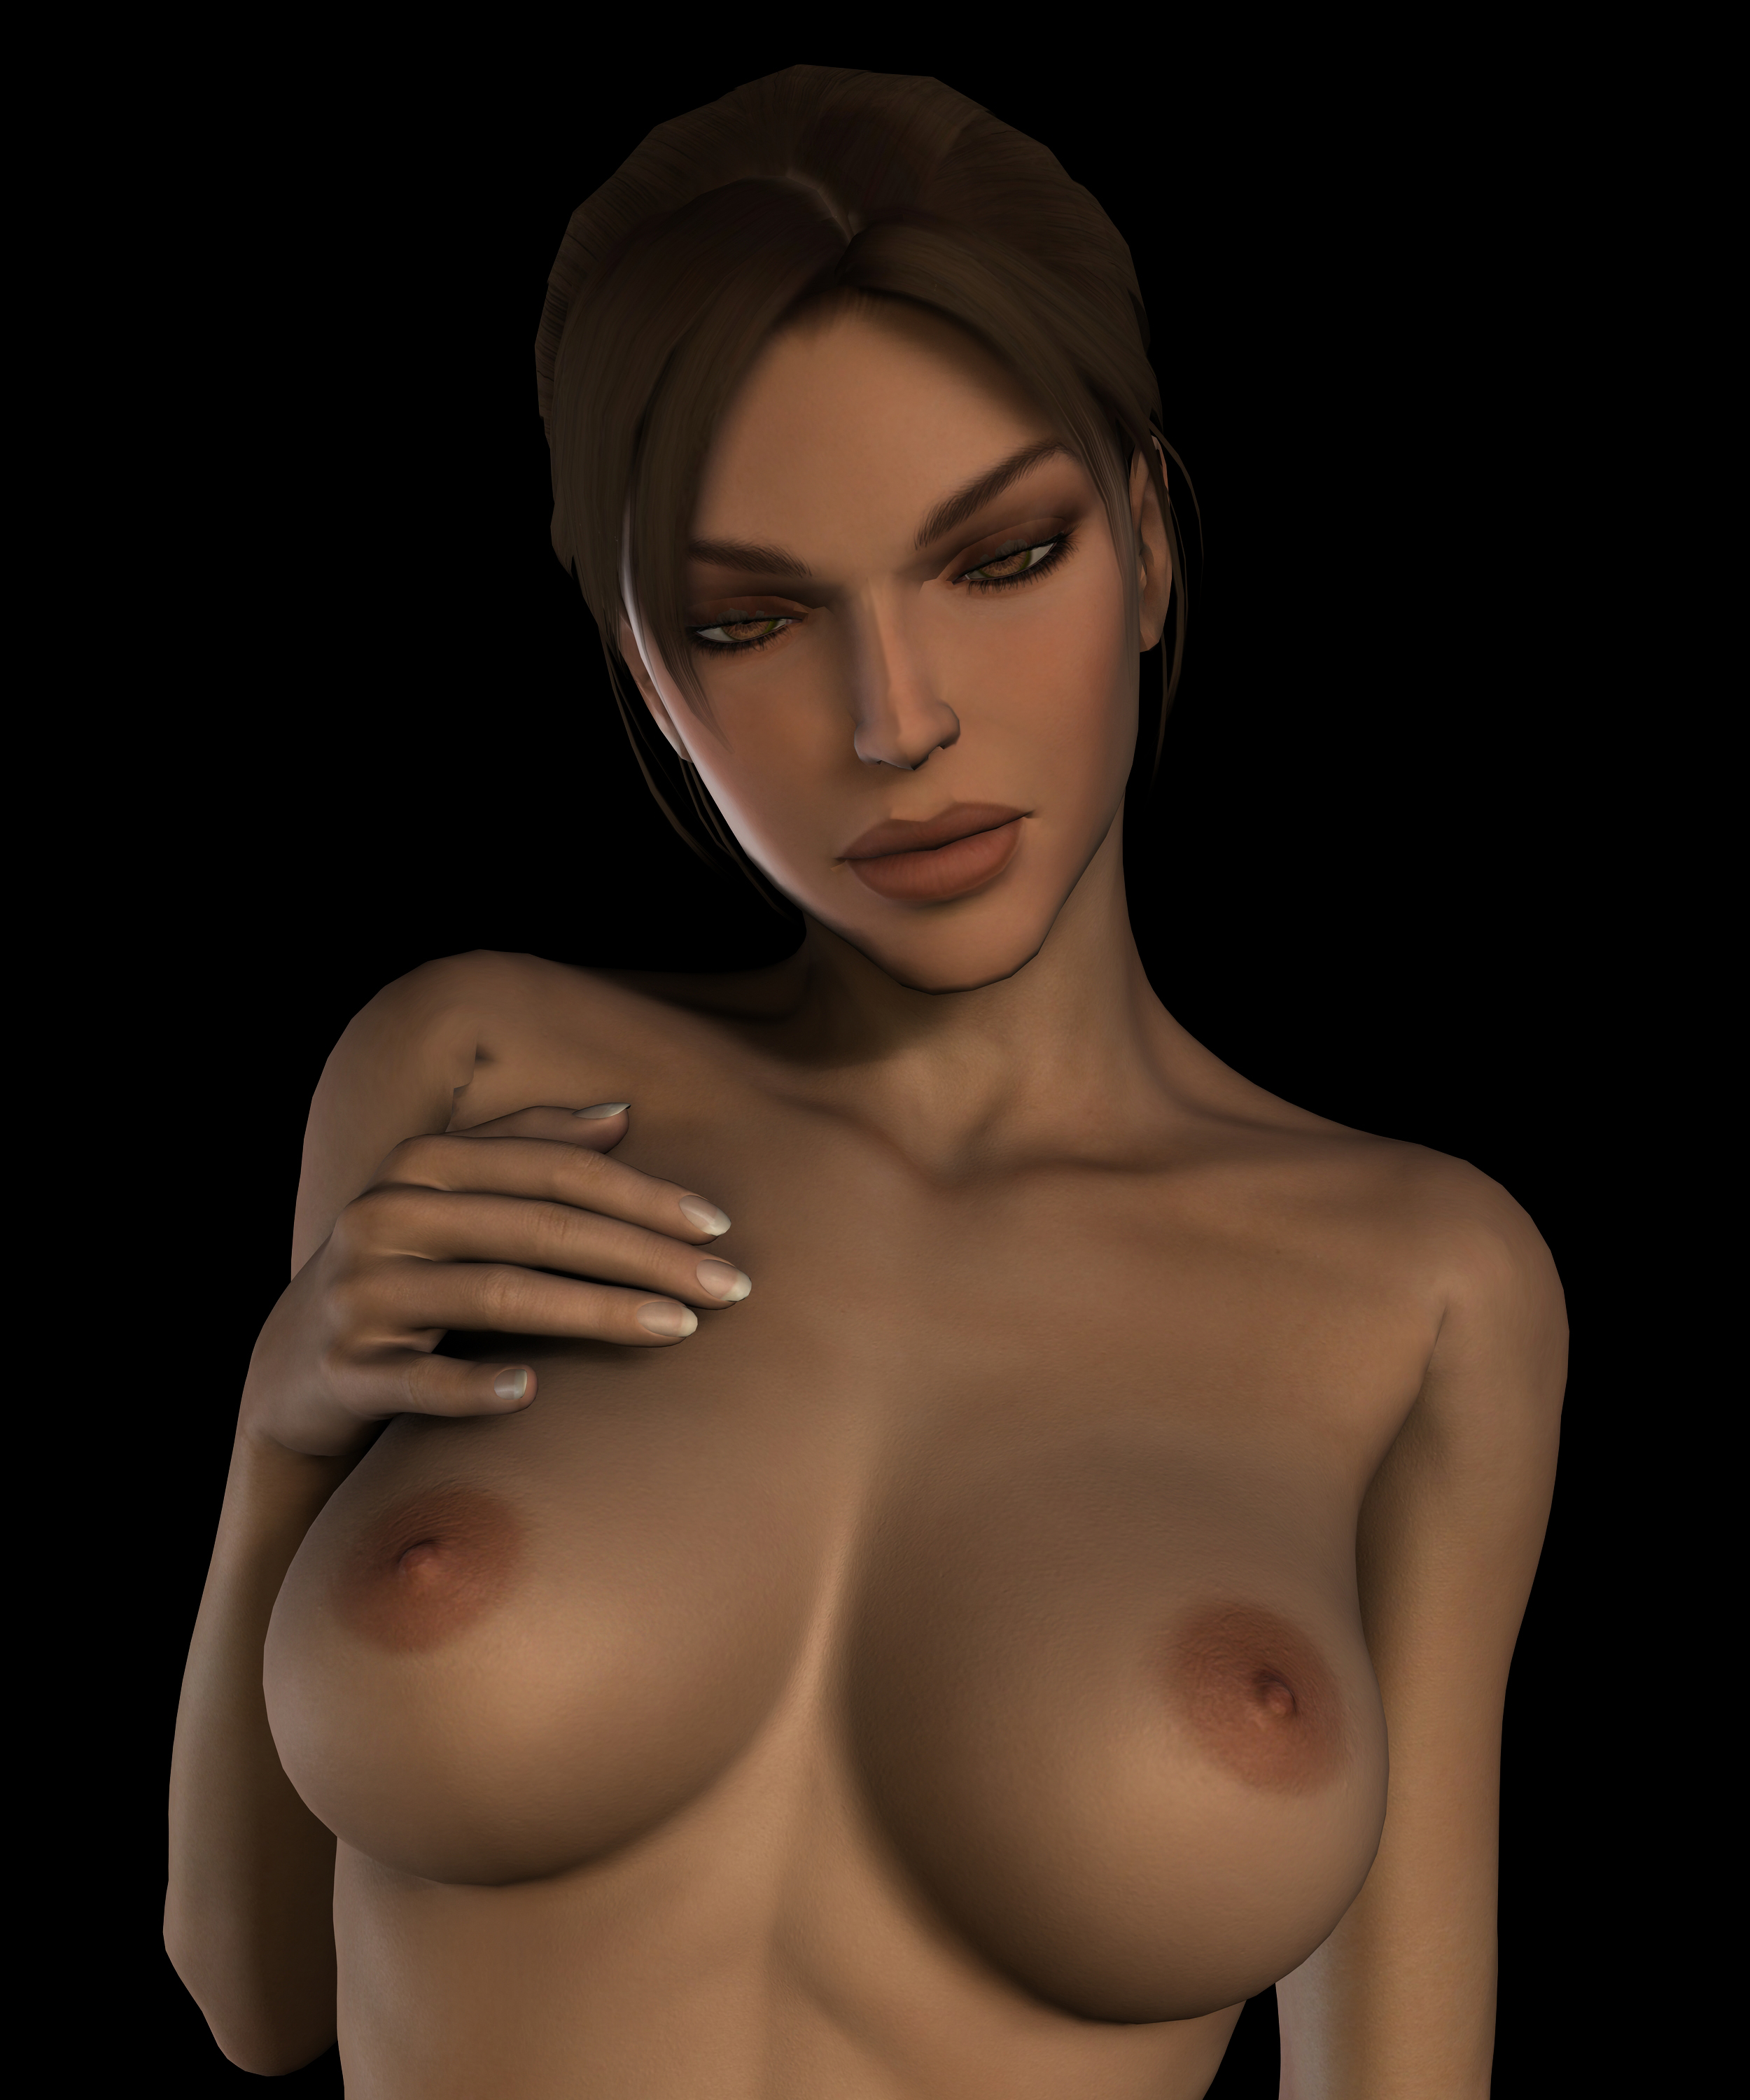 Lara croft 3d nude code sex video